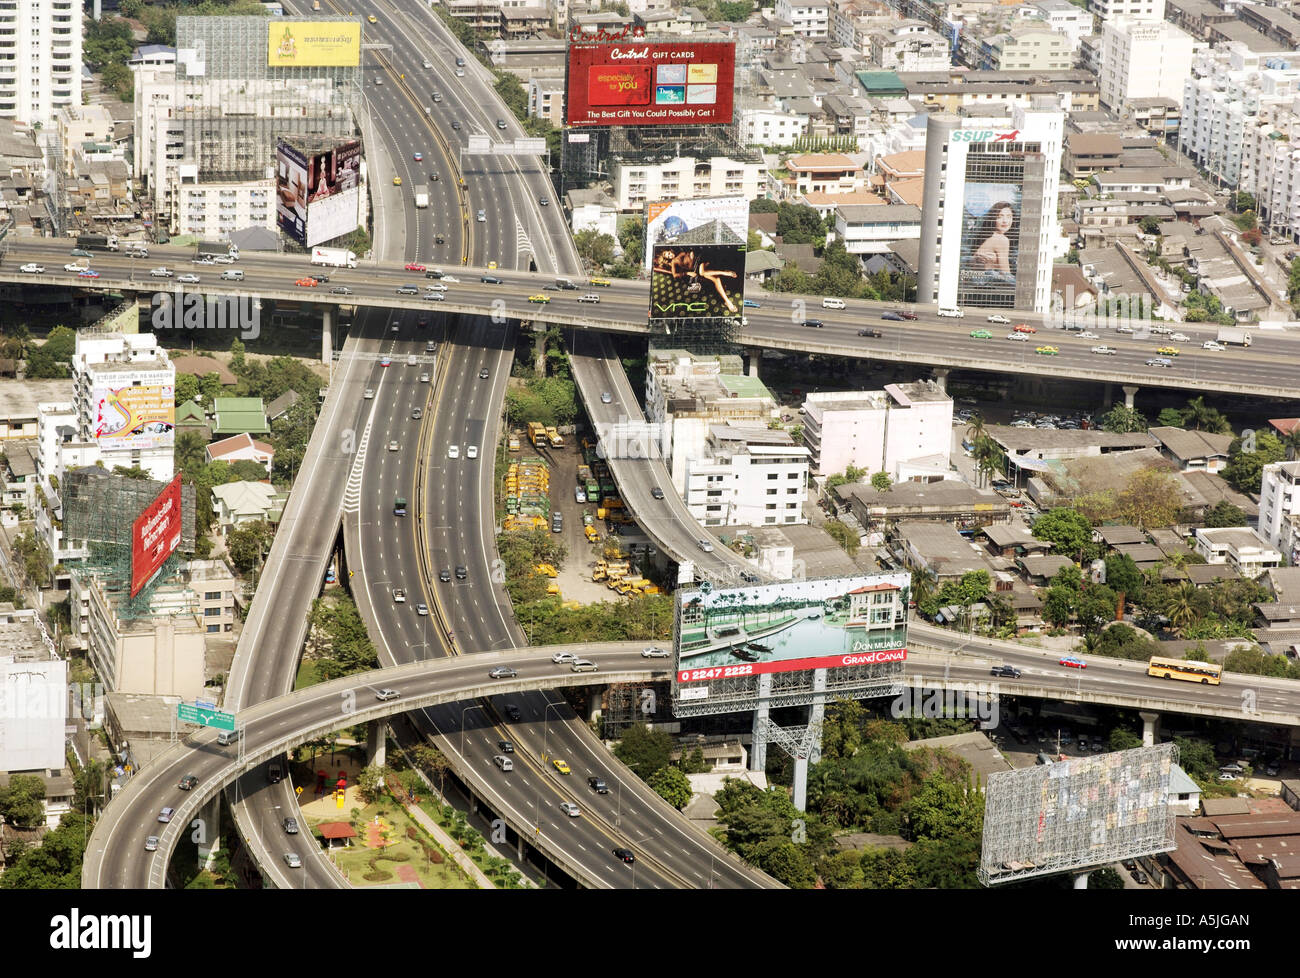 HMA102751 Aerial view of city with roads and flyovers Bangkok Thailand South East Asia - Stock Image